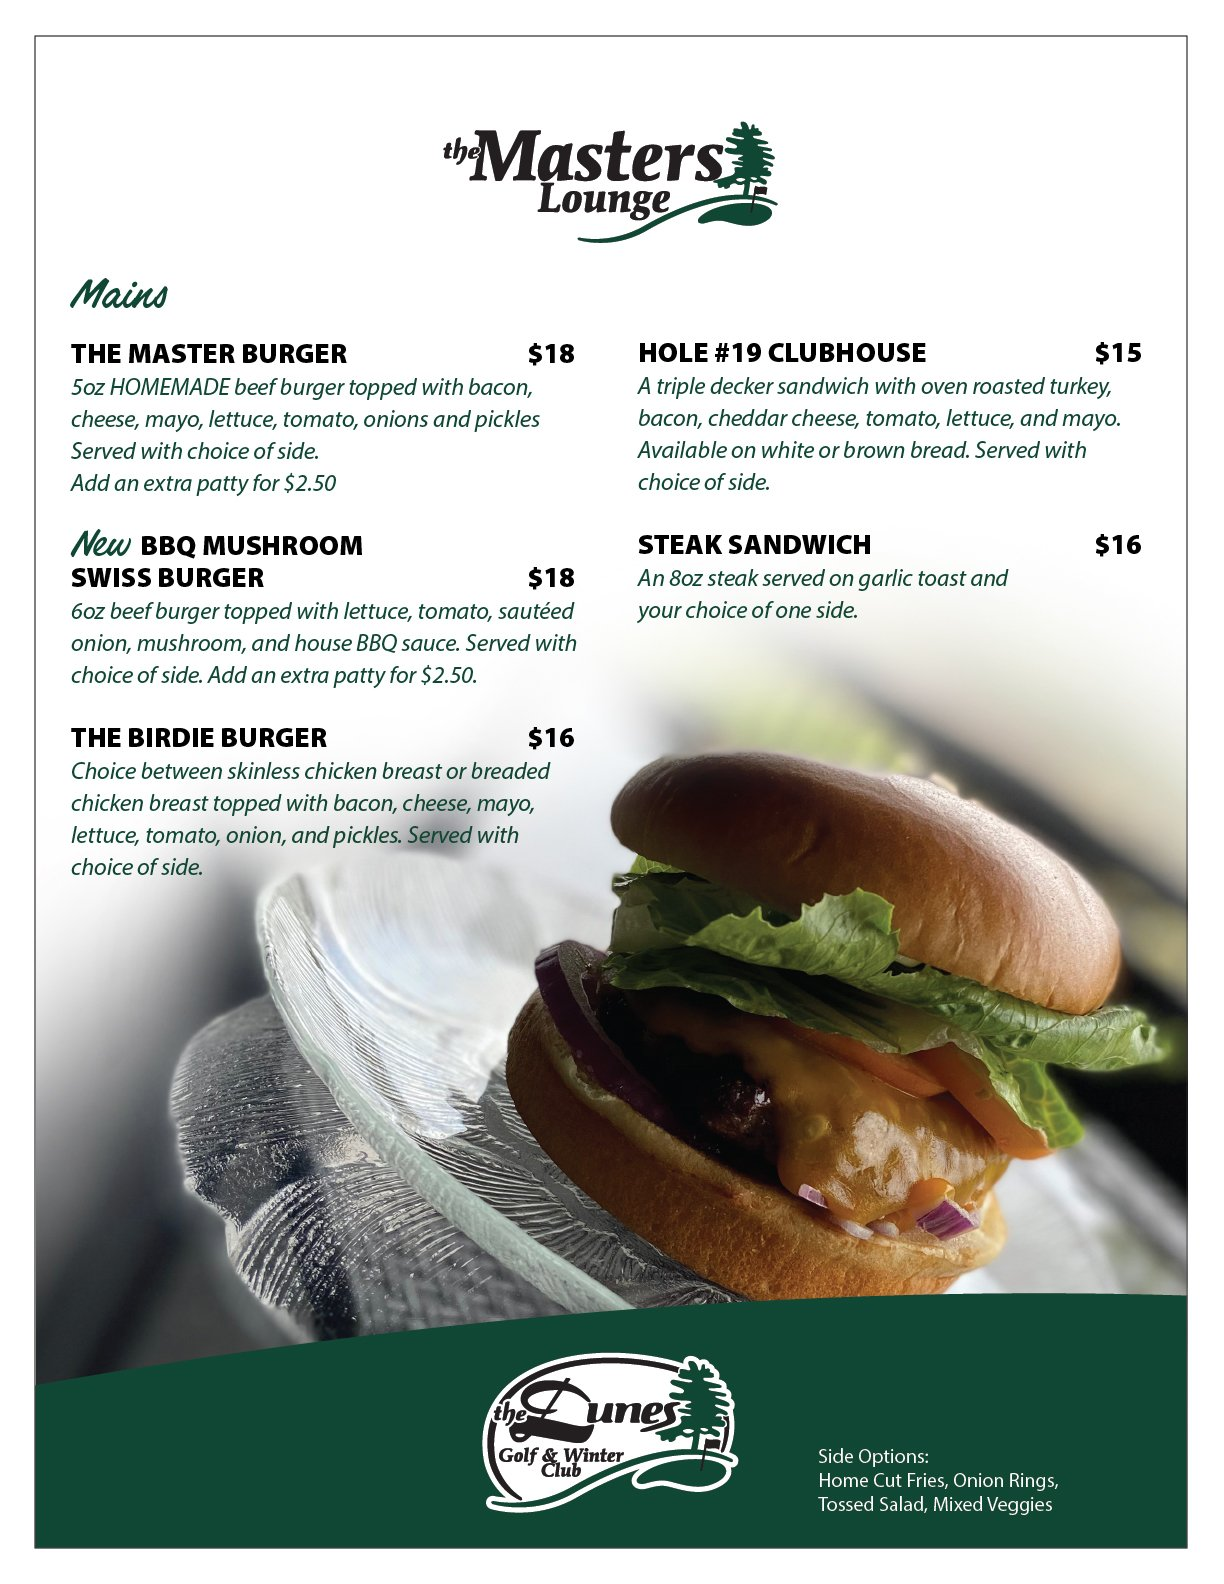 The Masters Lounge entrees